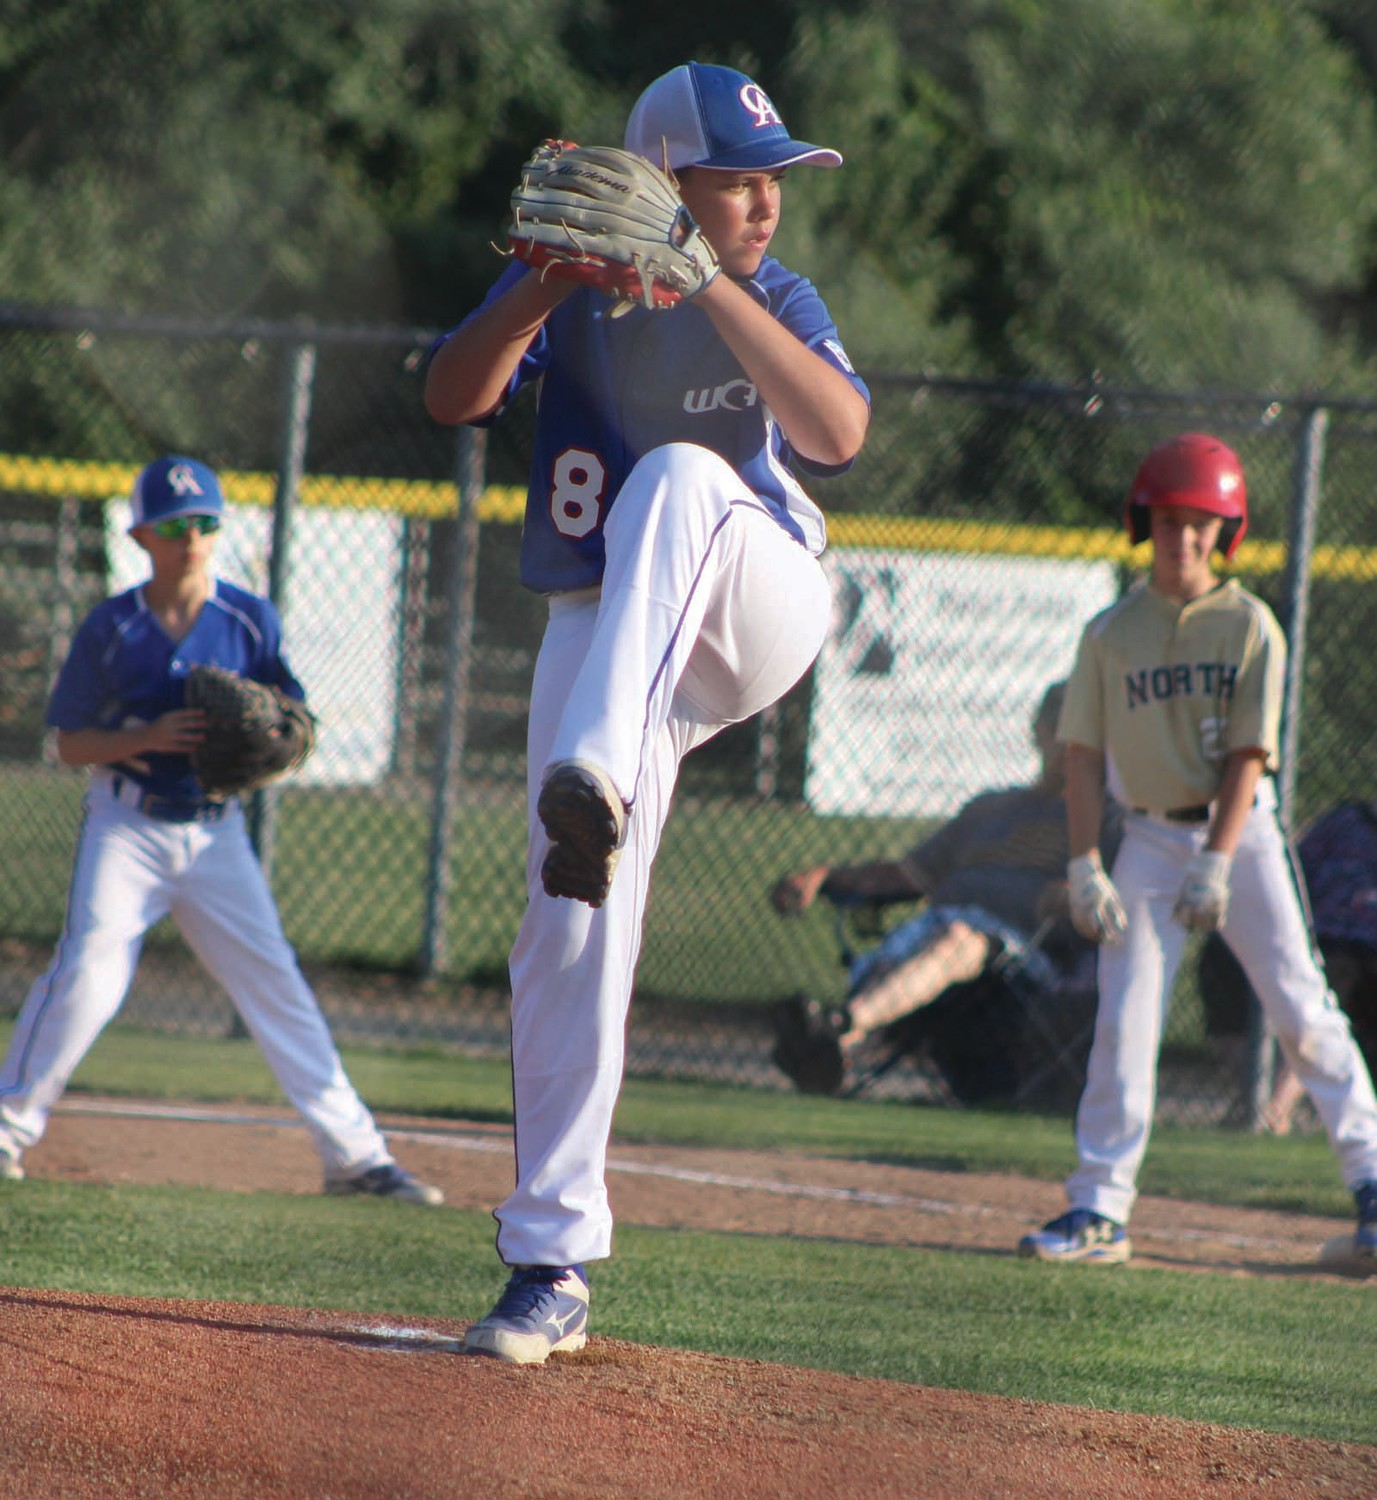 ON THE HILL: Warwick Continental pitcher Mason Broomfield delivers against NK/Wickford.